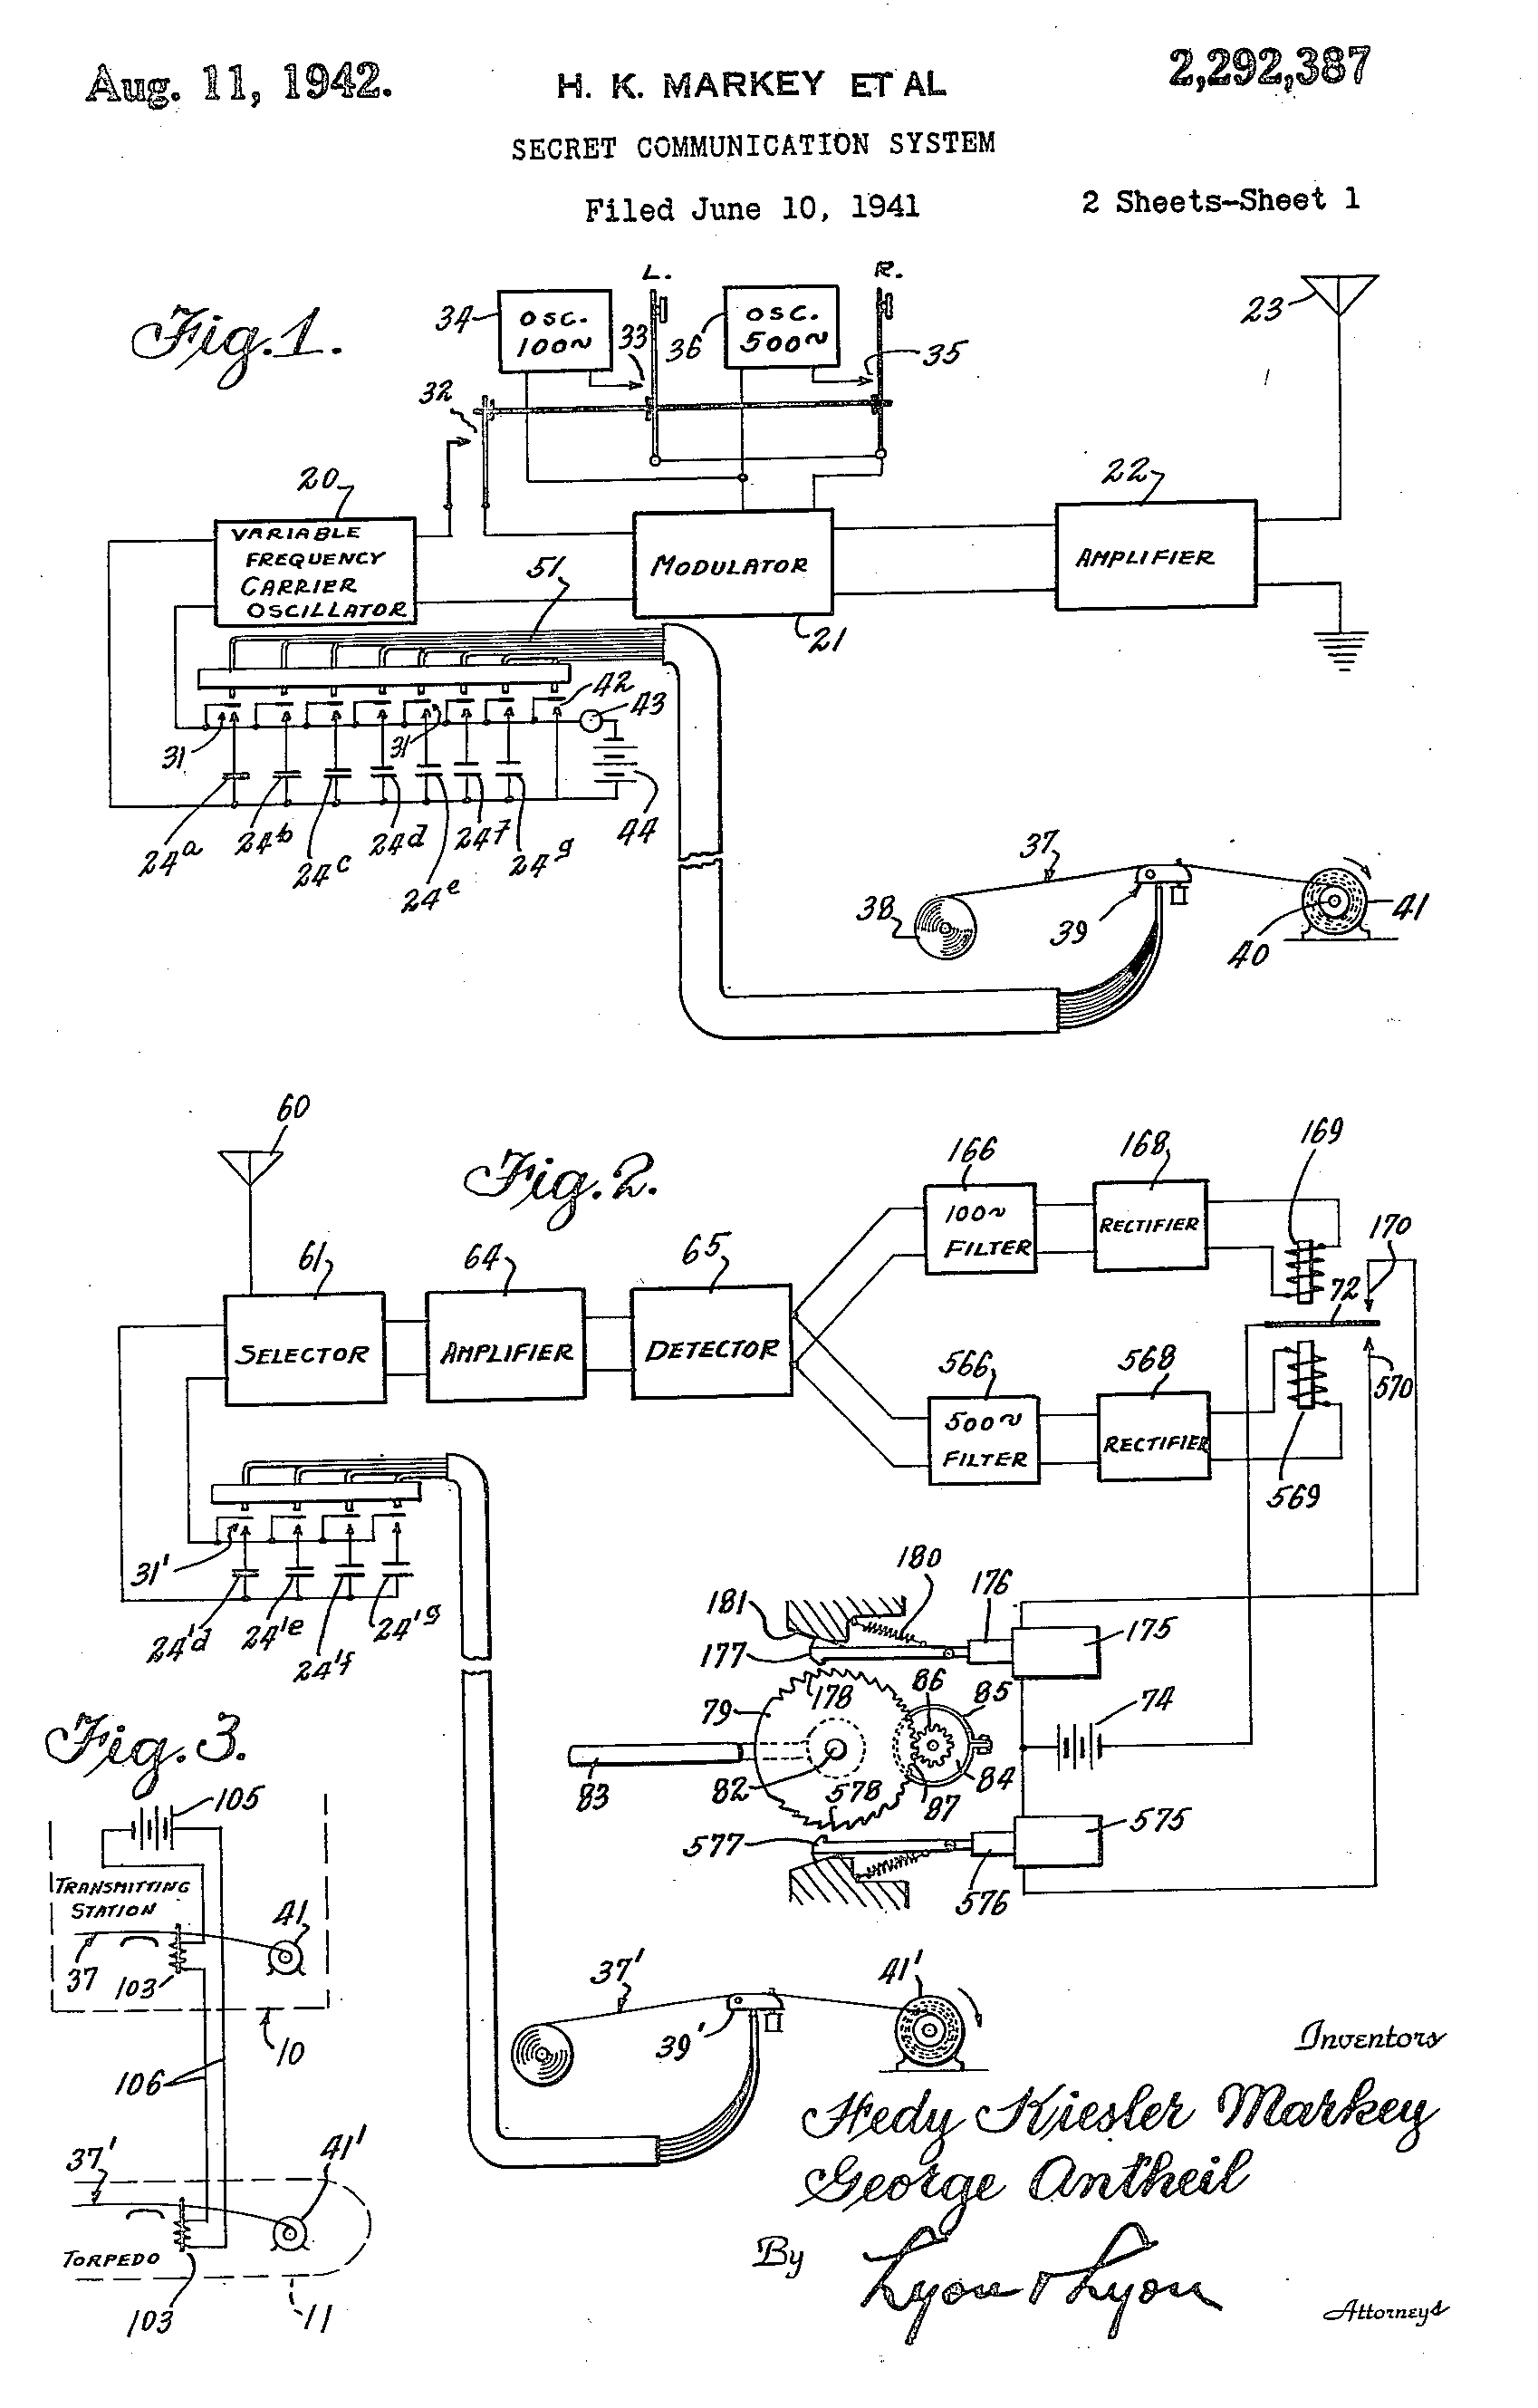 """[Figure 3] Figures 1-3 from Hedy Lamarr and George Antheil's patent for a """"Secret Communication System"""" Image Source:  U.S. Patent No. US2292387 A     [6] ."""